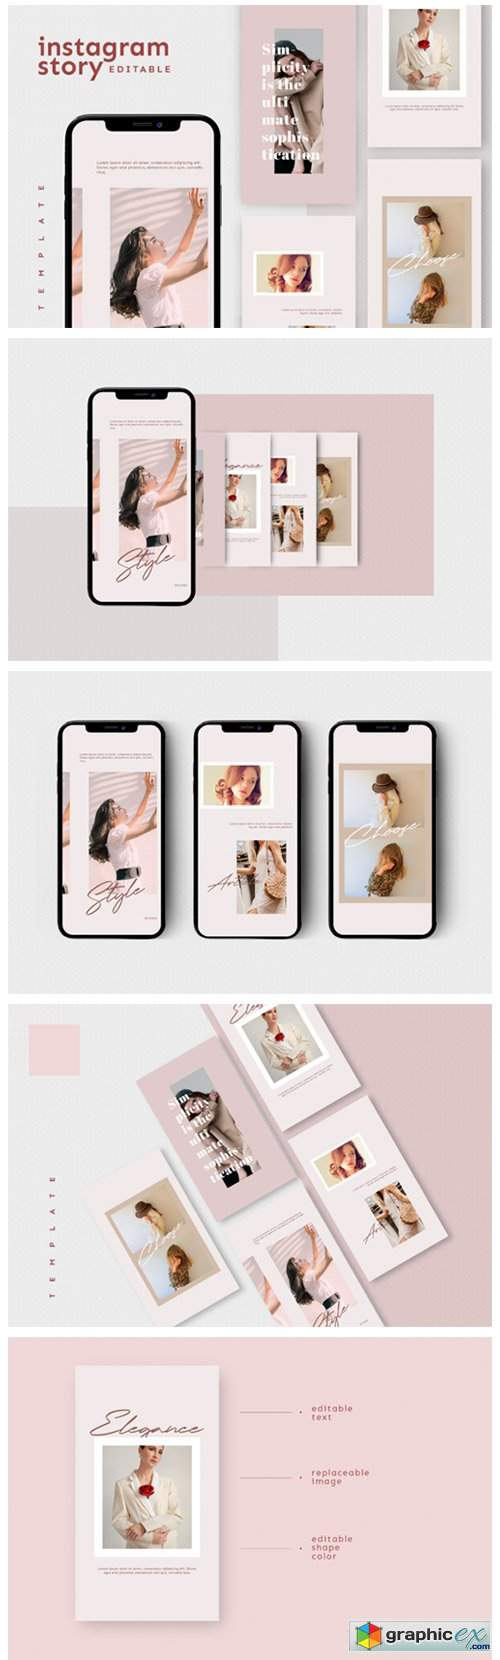 Instagram Story Template 3768416